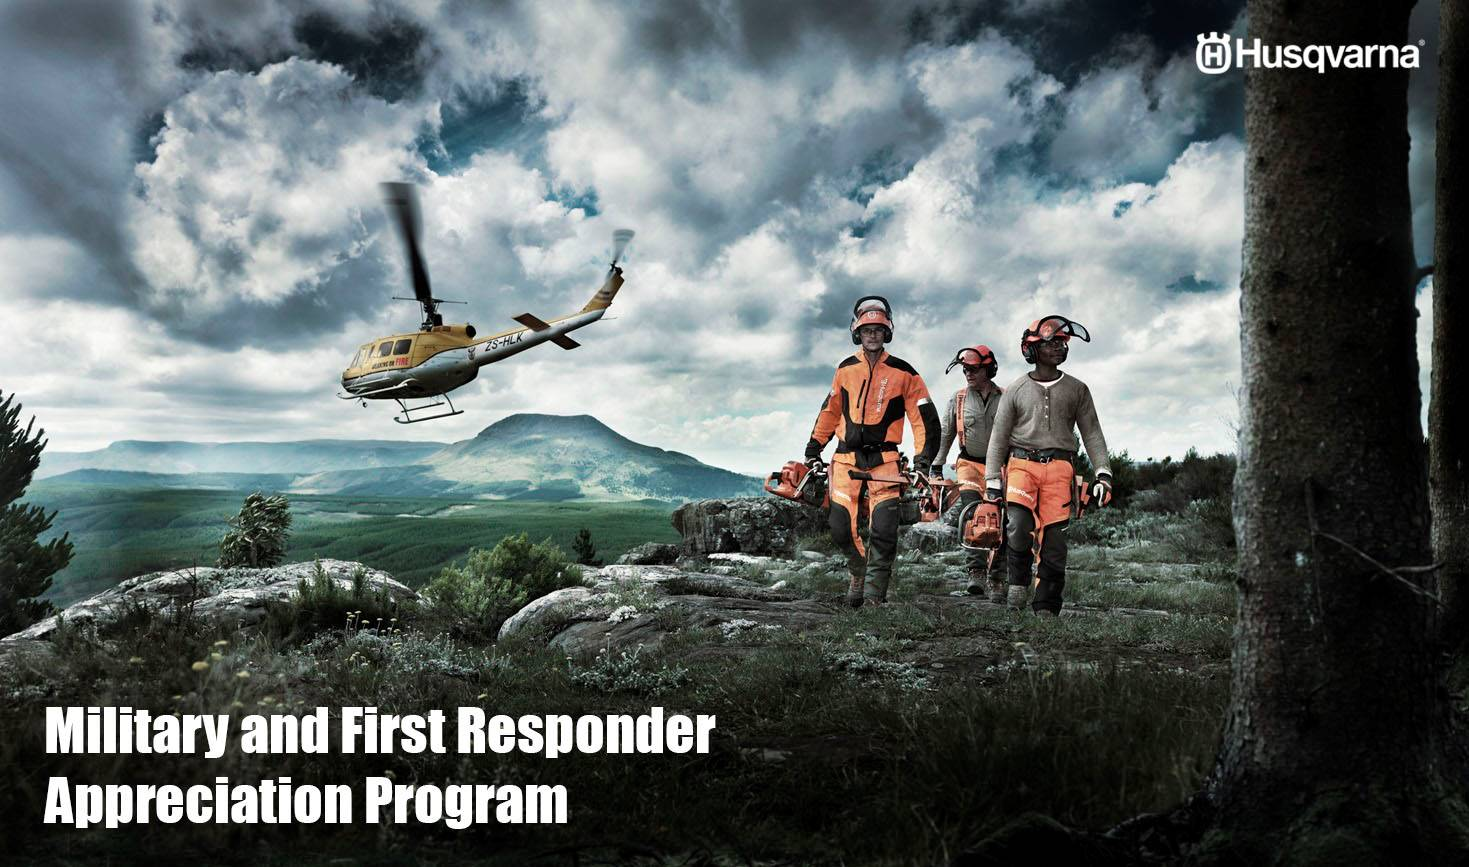 Husqvarna Power Equipment - Military and First Responder Appreciation Program